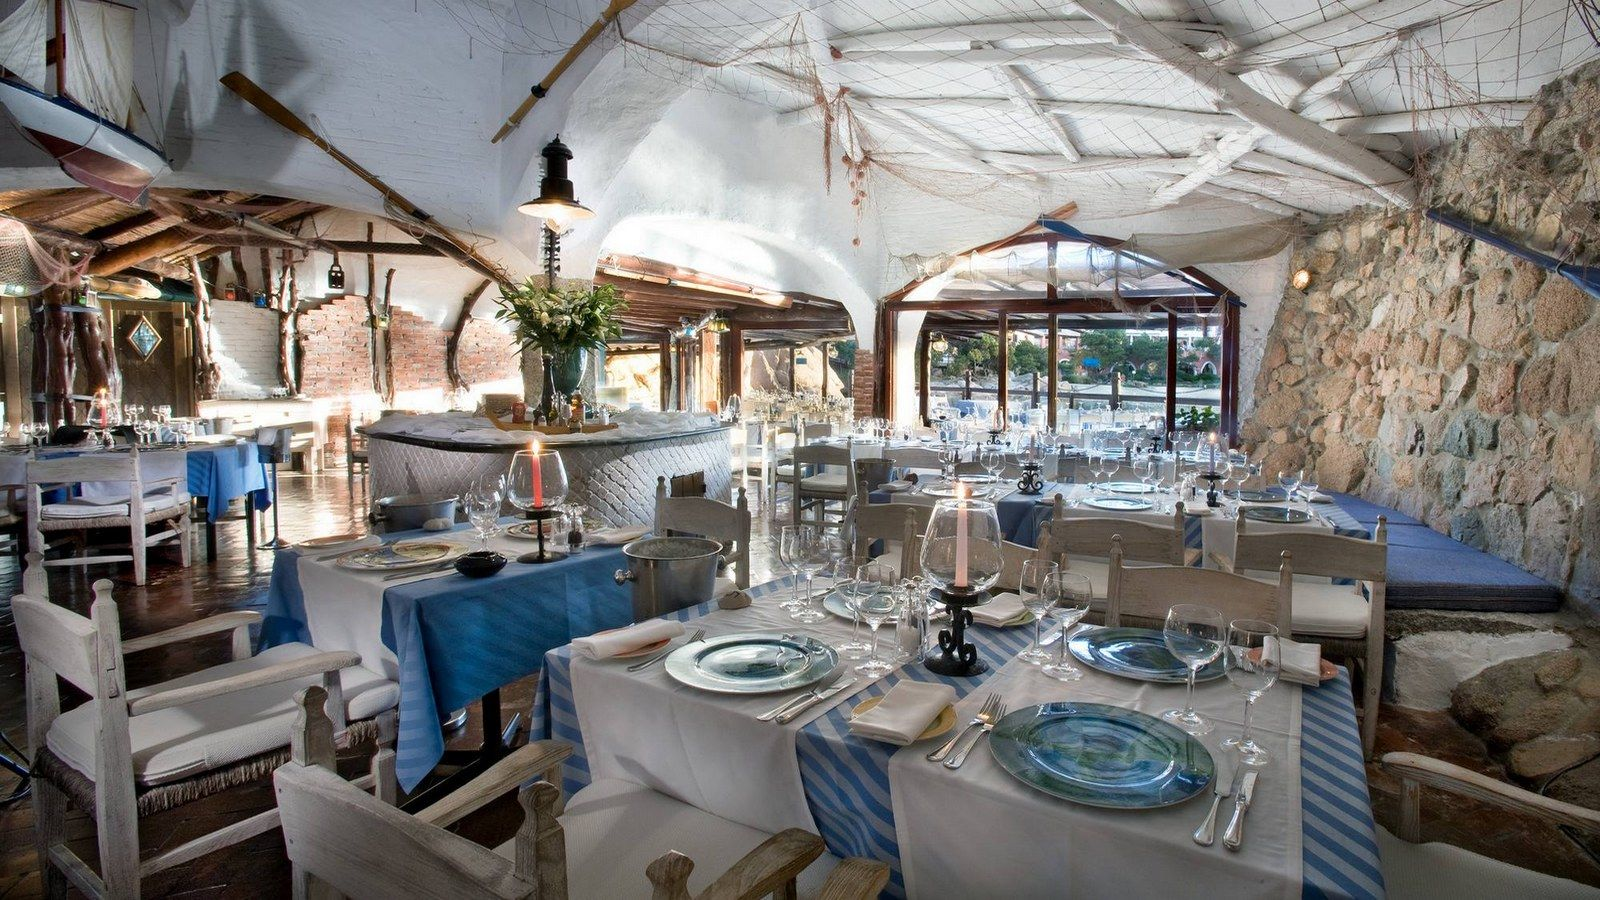 Interior of Pescatore Restaurant at Costa Smeralda